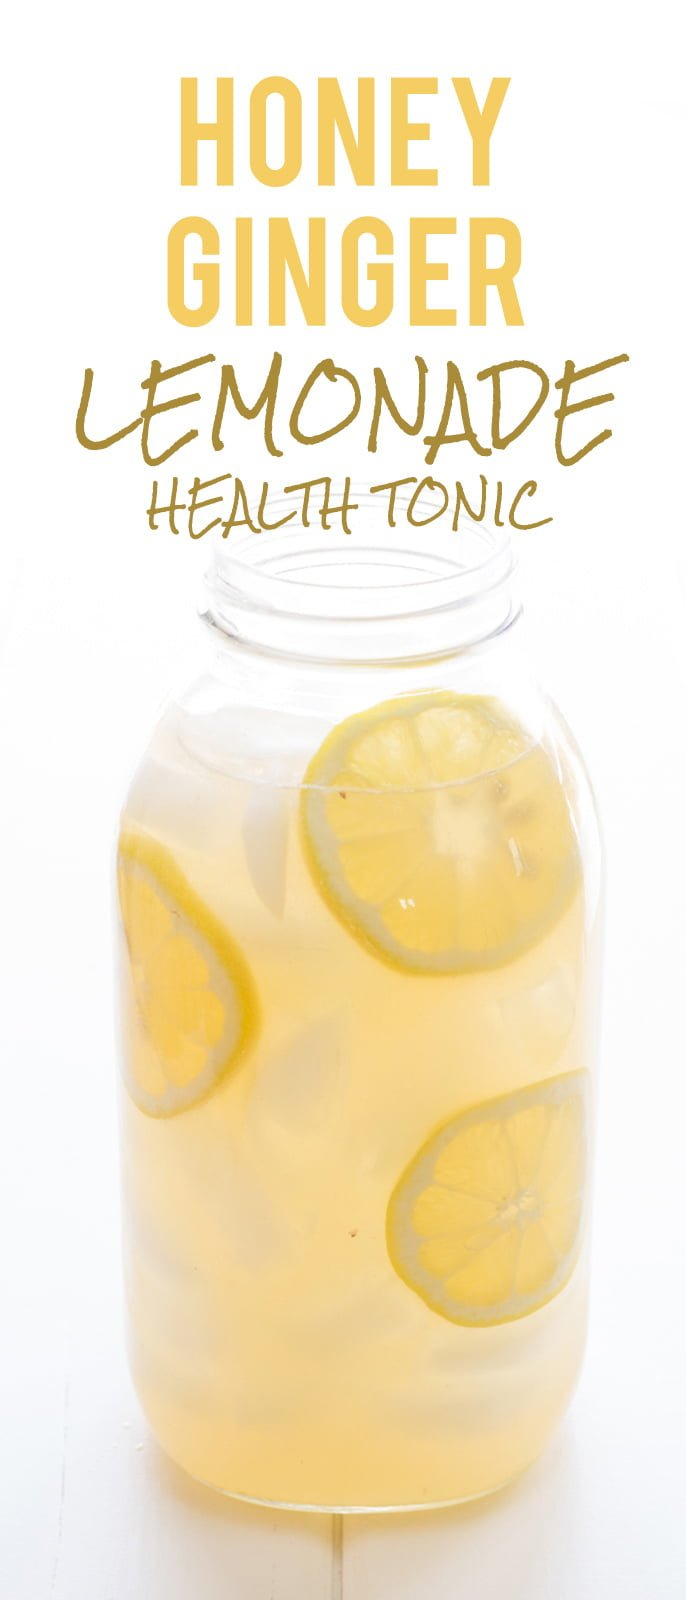 Honey Ginger Lemonade Health Tonic